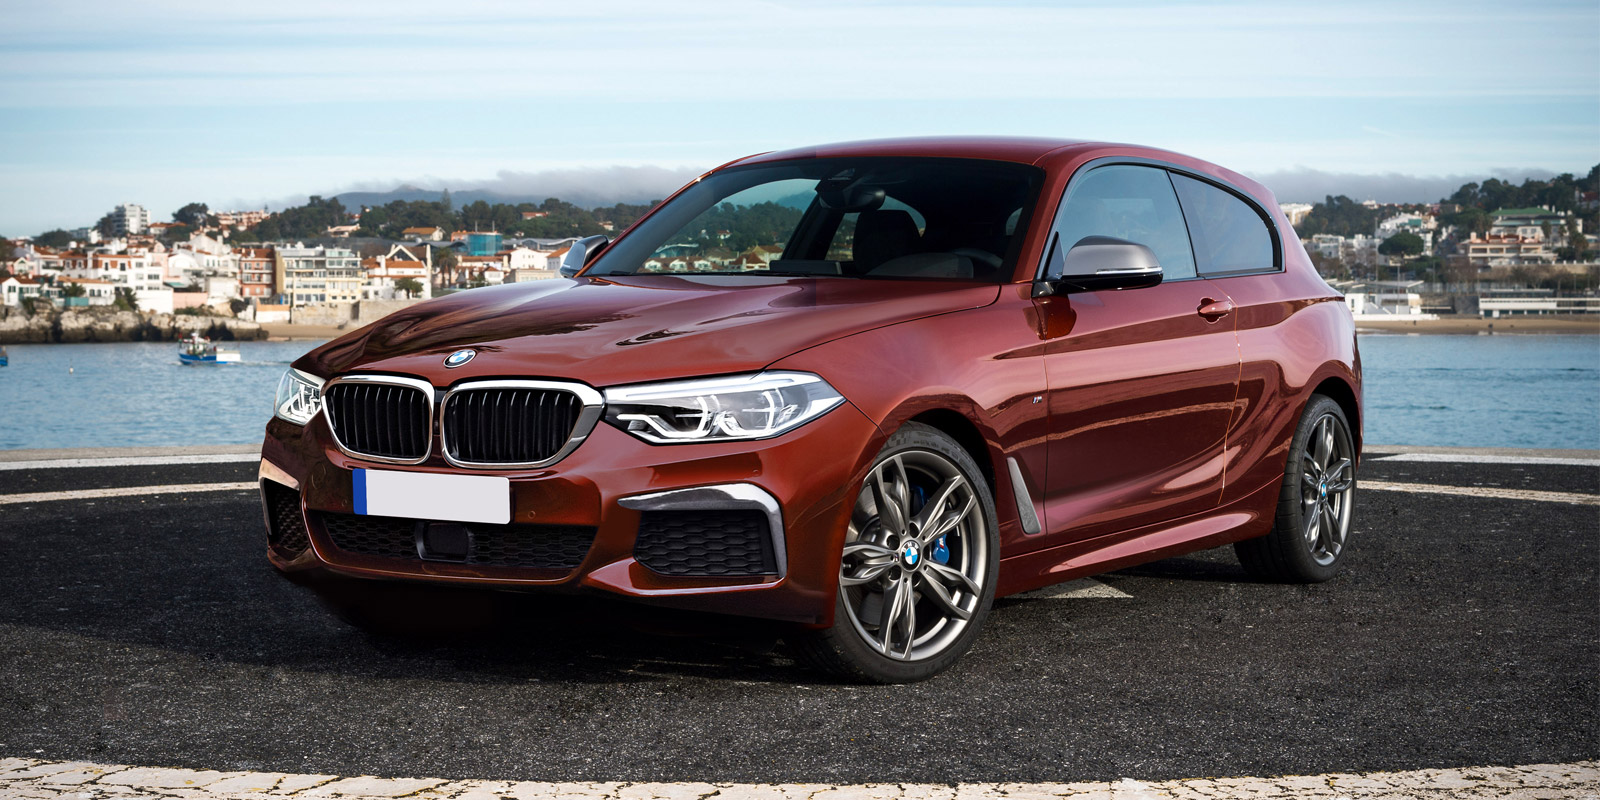 2019 Bmw 1 Series Price, Specs And Release Date Carwow